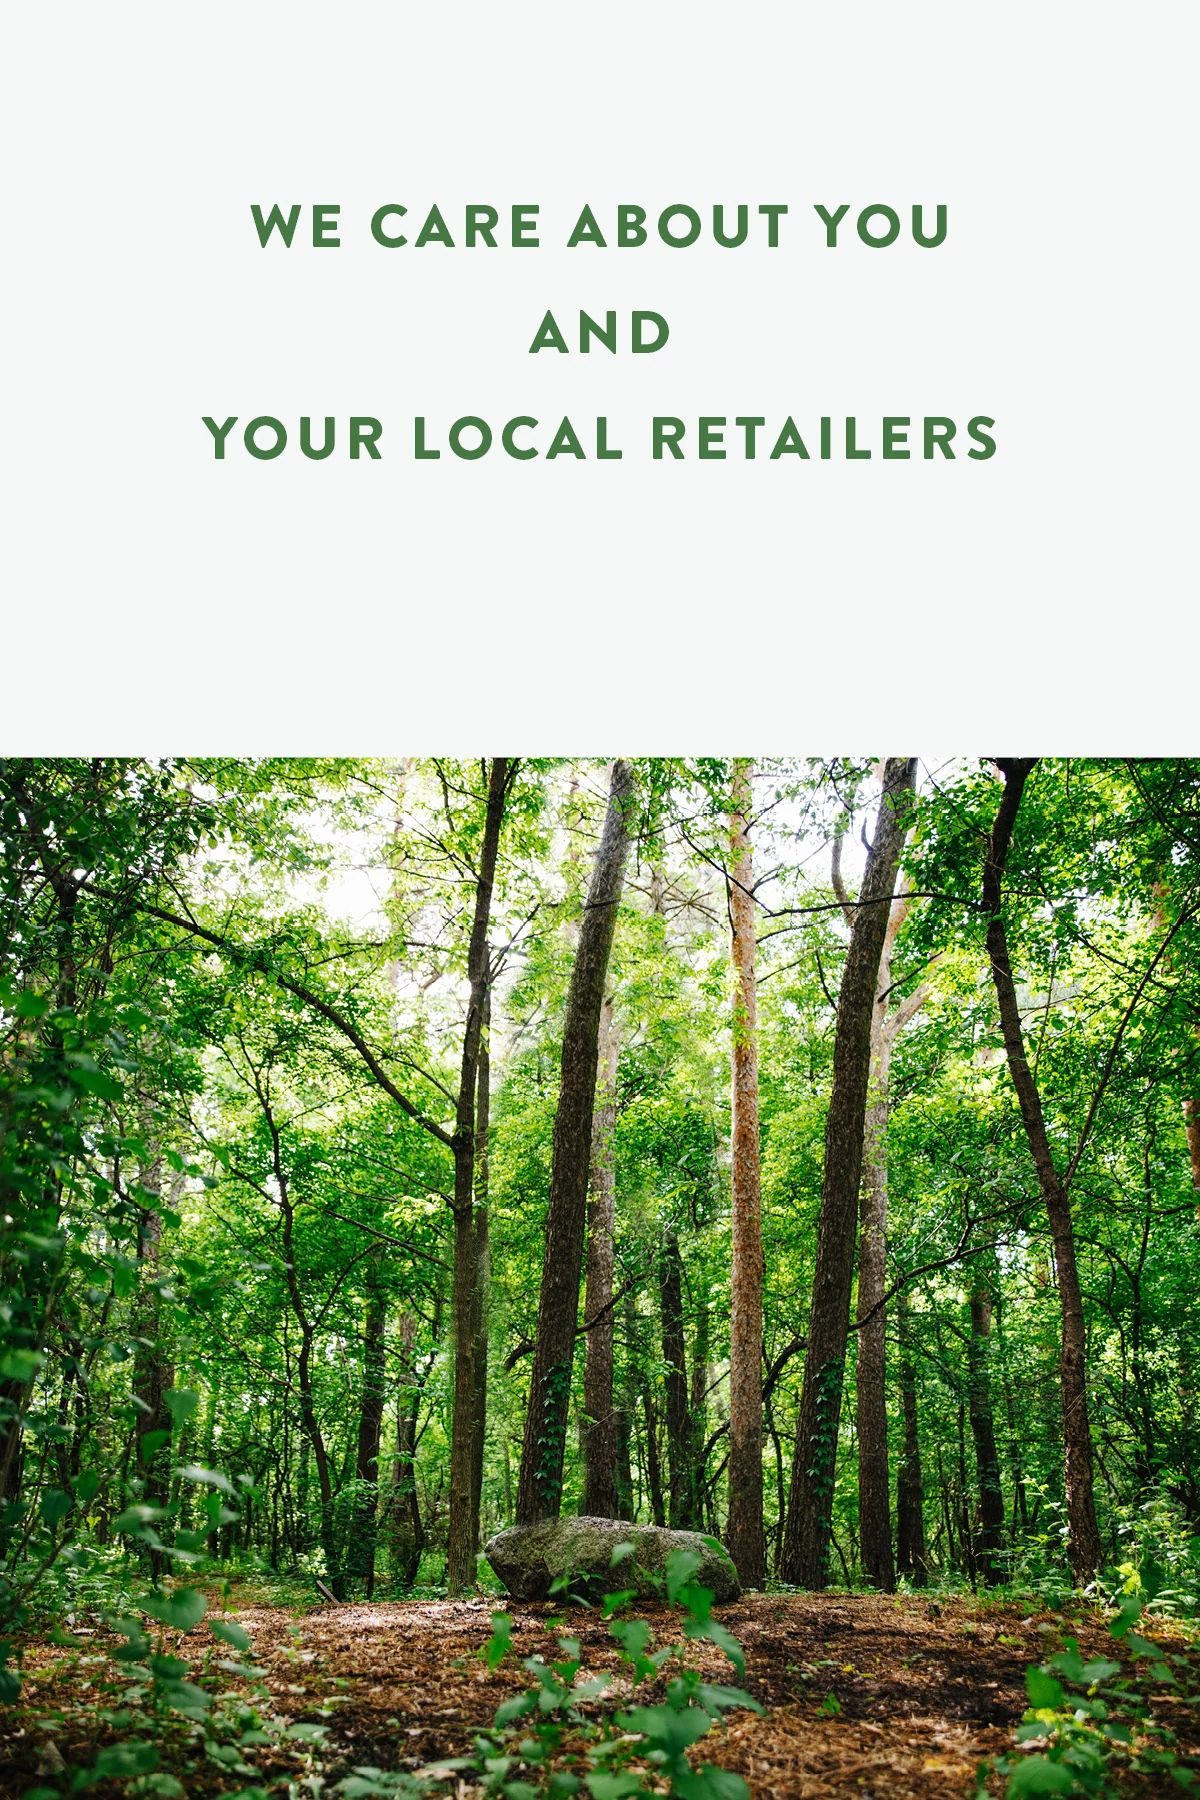 We care about you and your local retailers (mobile)